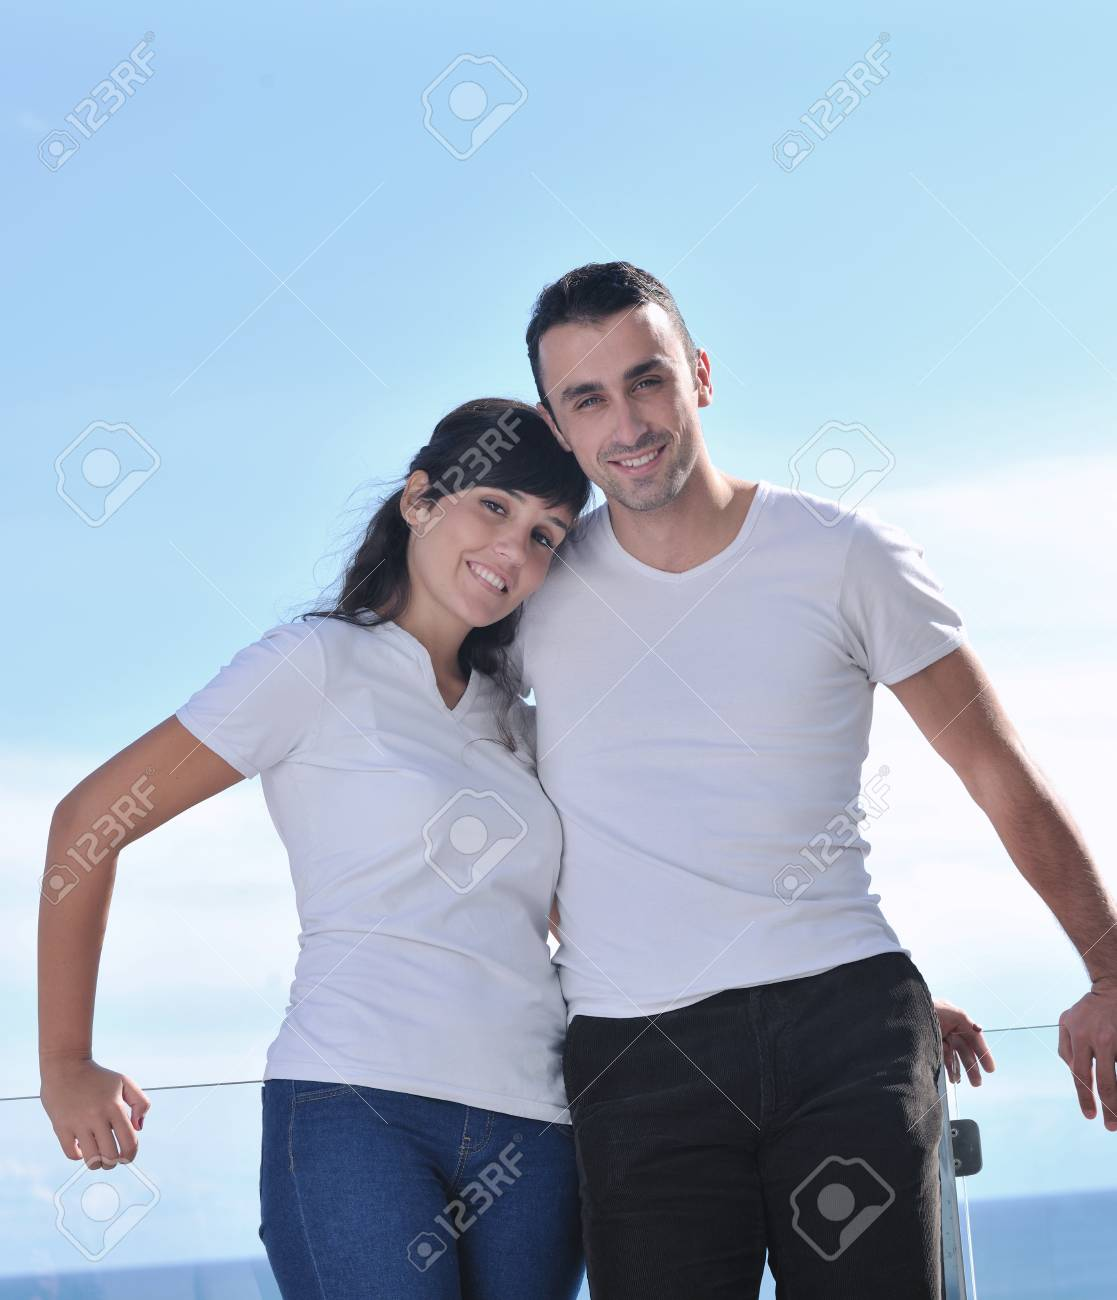 happy young couple relax on balcony outdoor with ocean and blue sky in background Stock Photo - 11398831